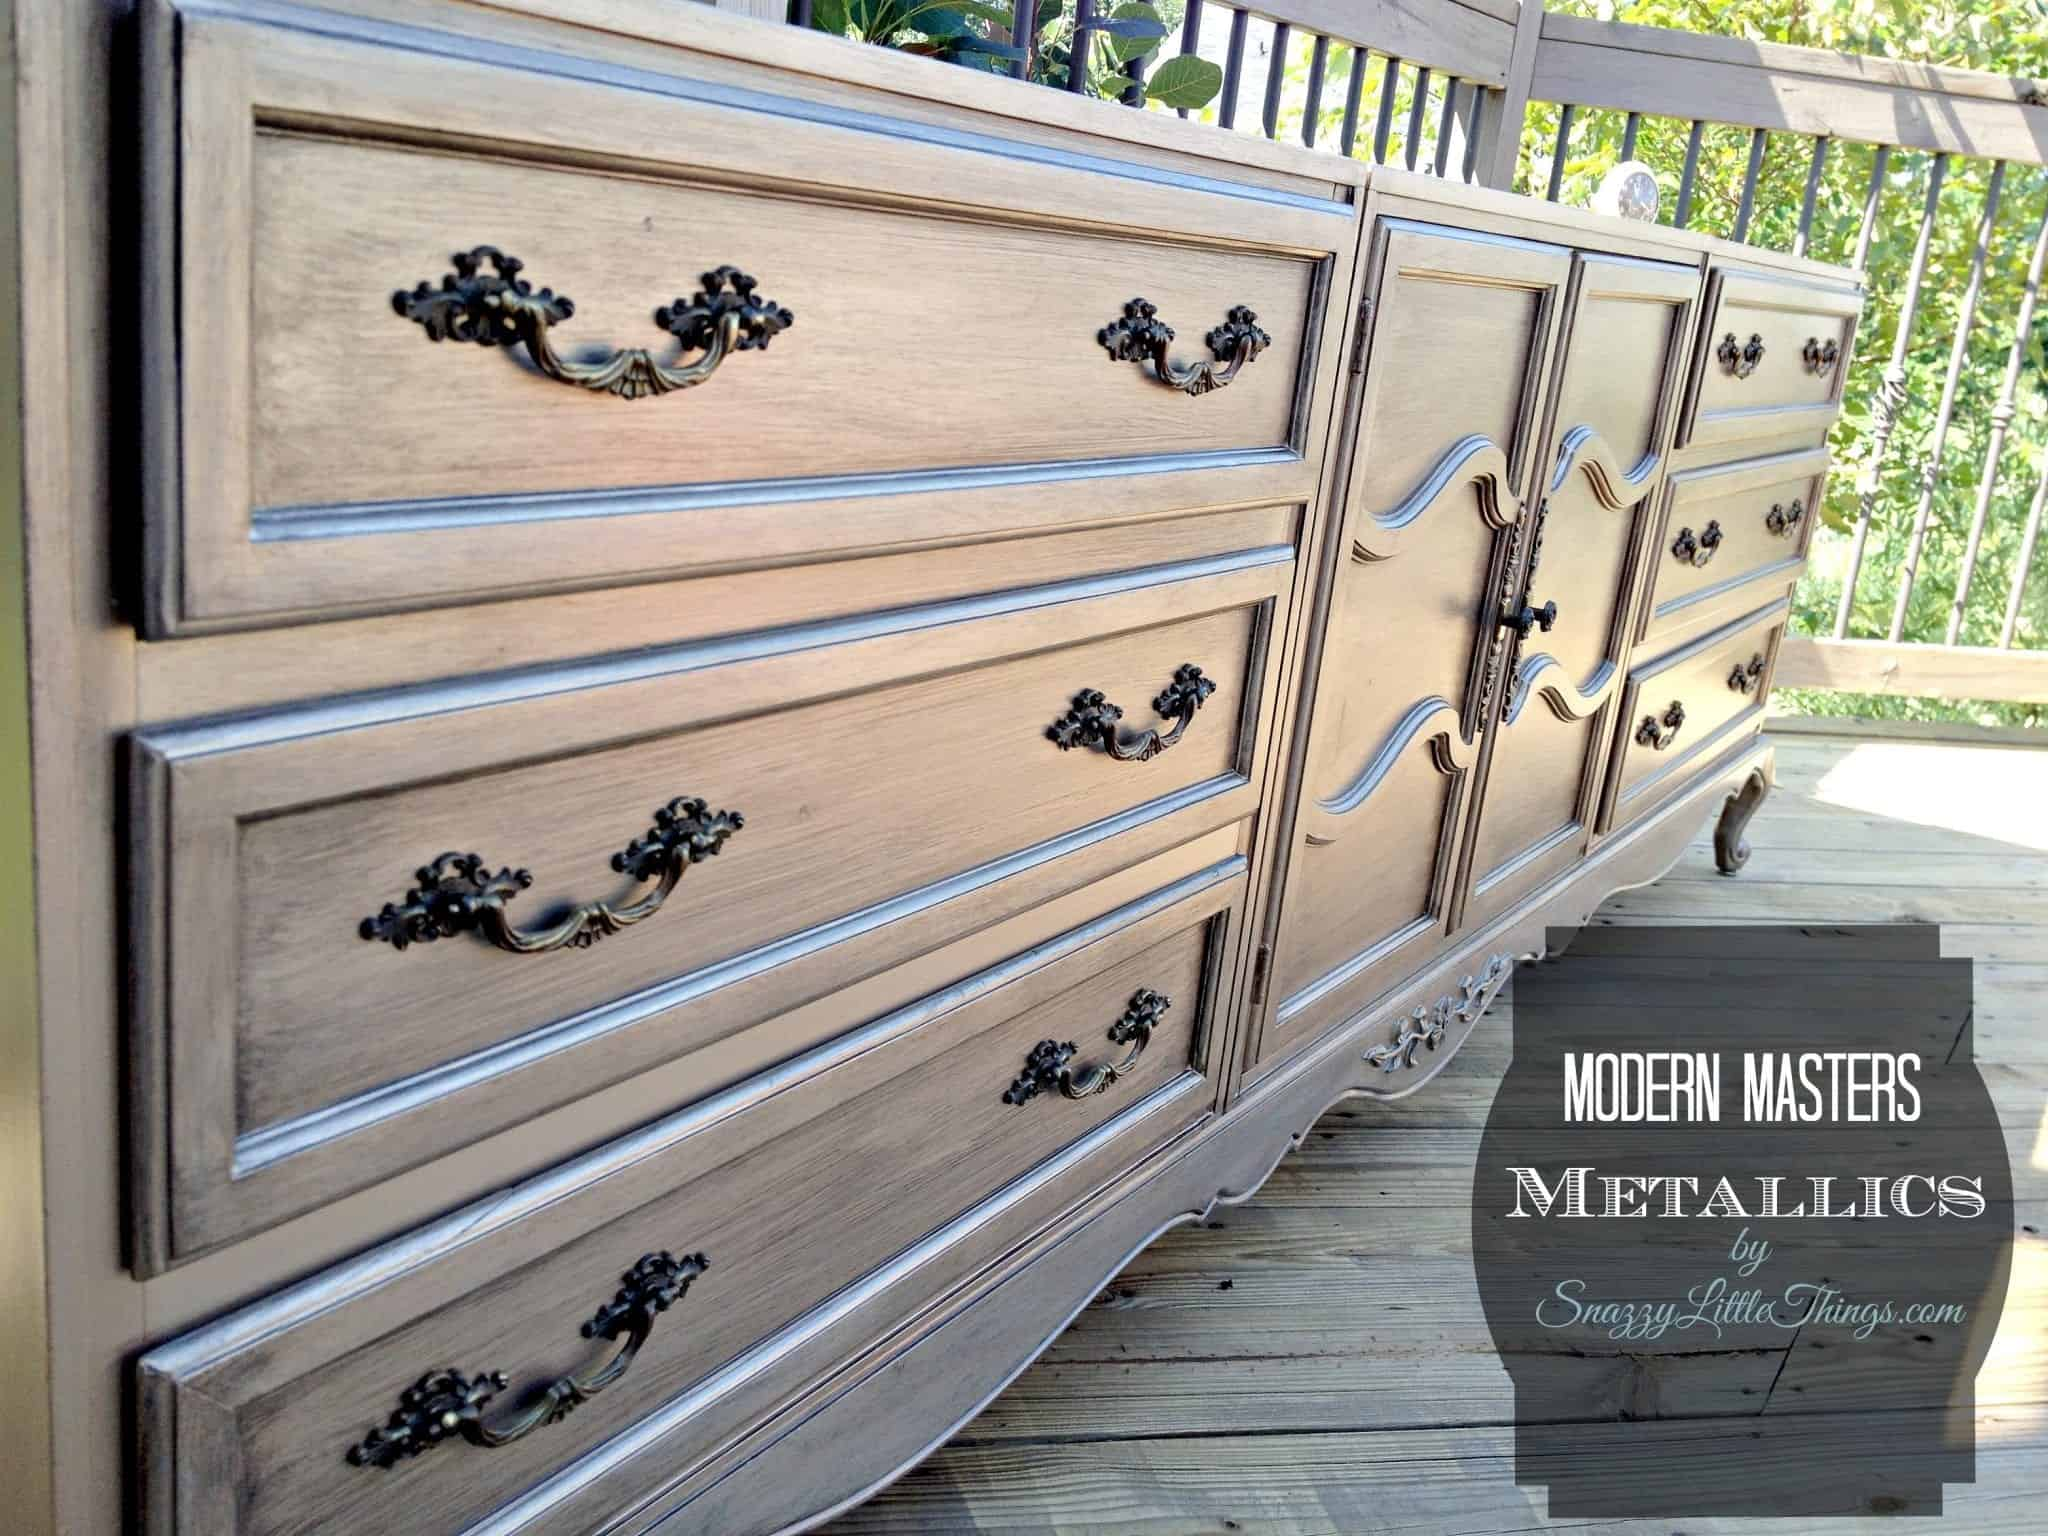 Furniture Legs Masters diy furniture project using modern masters metallic paint